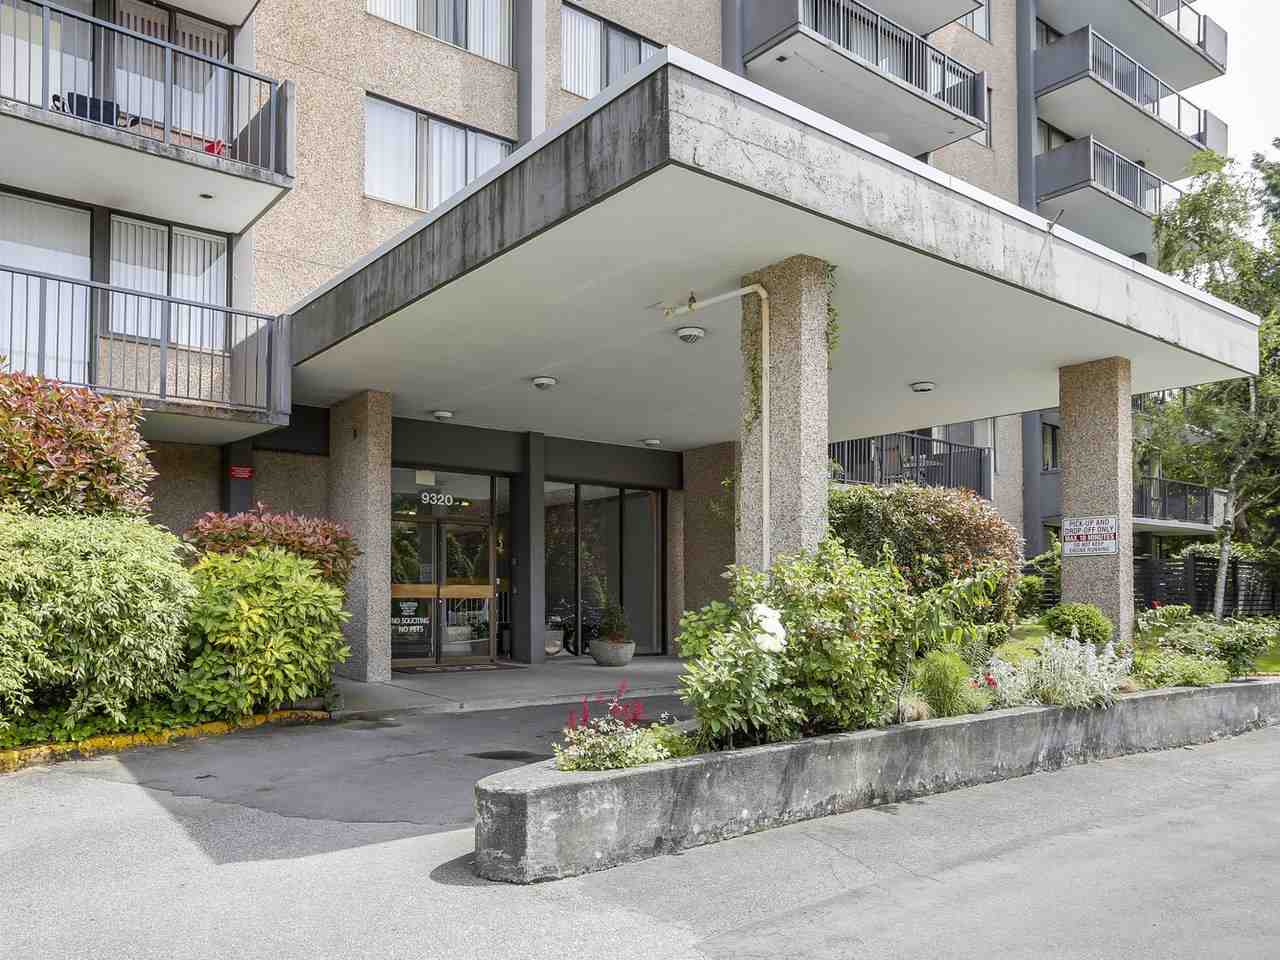 "Photo 20: 403 9320 PARKSVILLE Drive in Richmond: Boyd Park Condo for sale in ""MASTER GREEN"" : MLS® # R2175892"